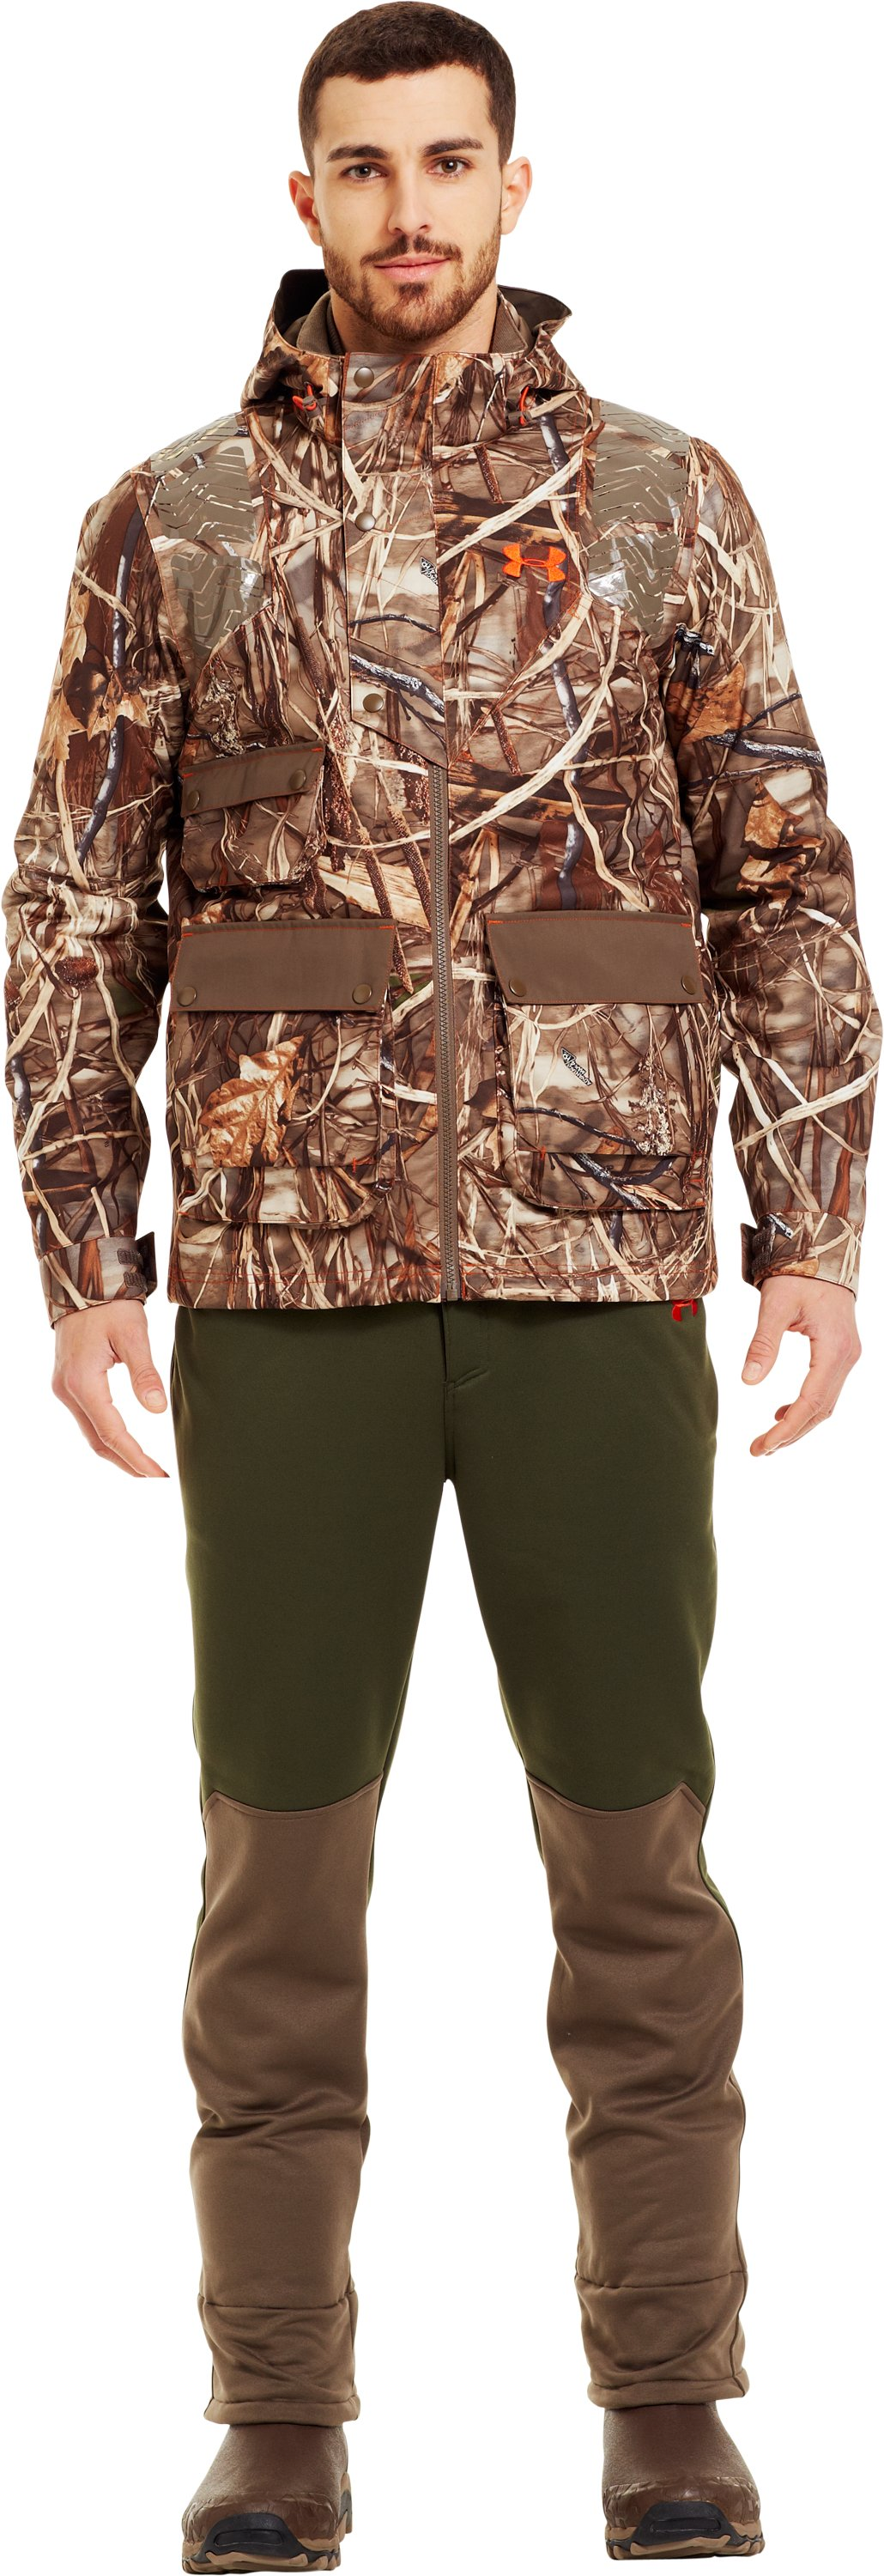 Men's UA Skysweeper Systems 3-in-1 Jacket, Realtree Max, zoomed image